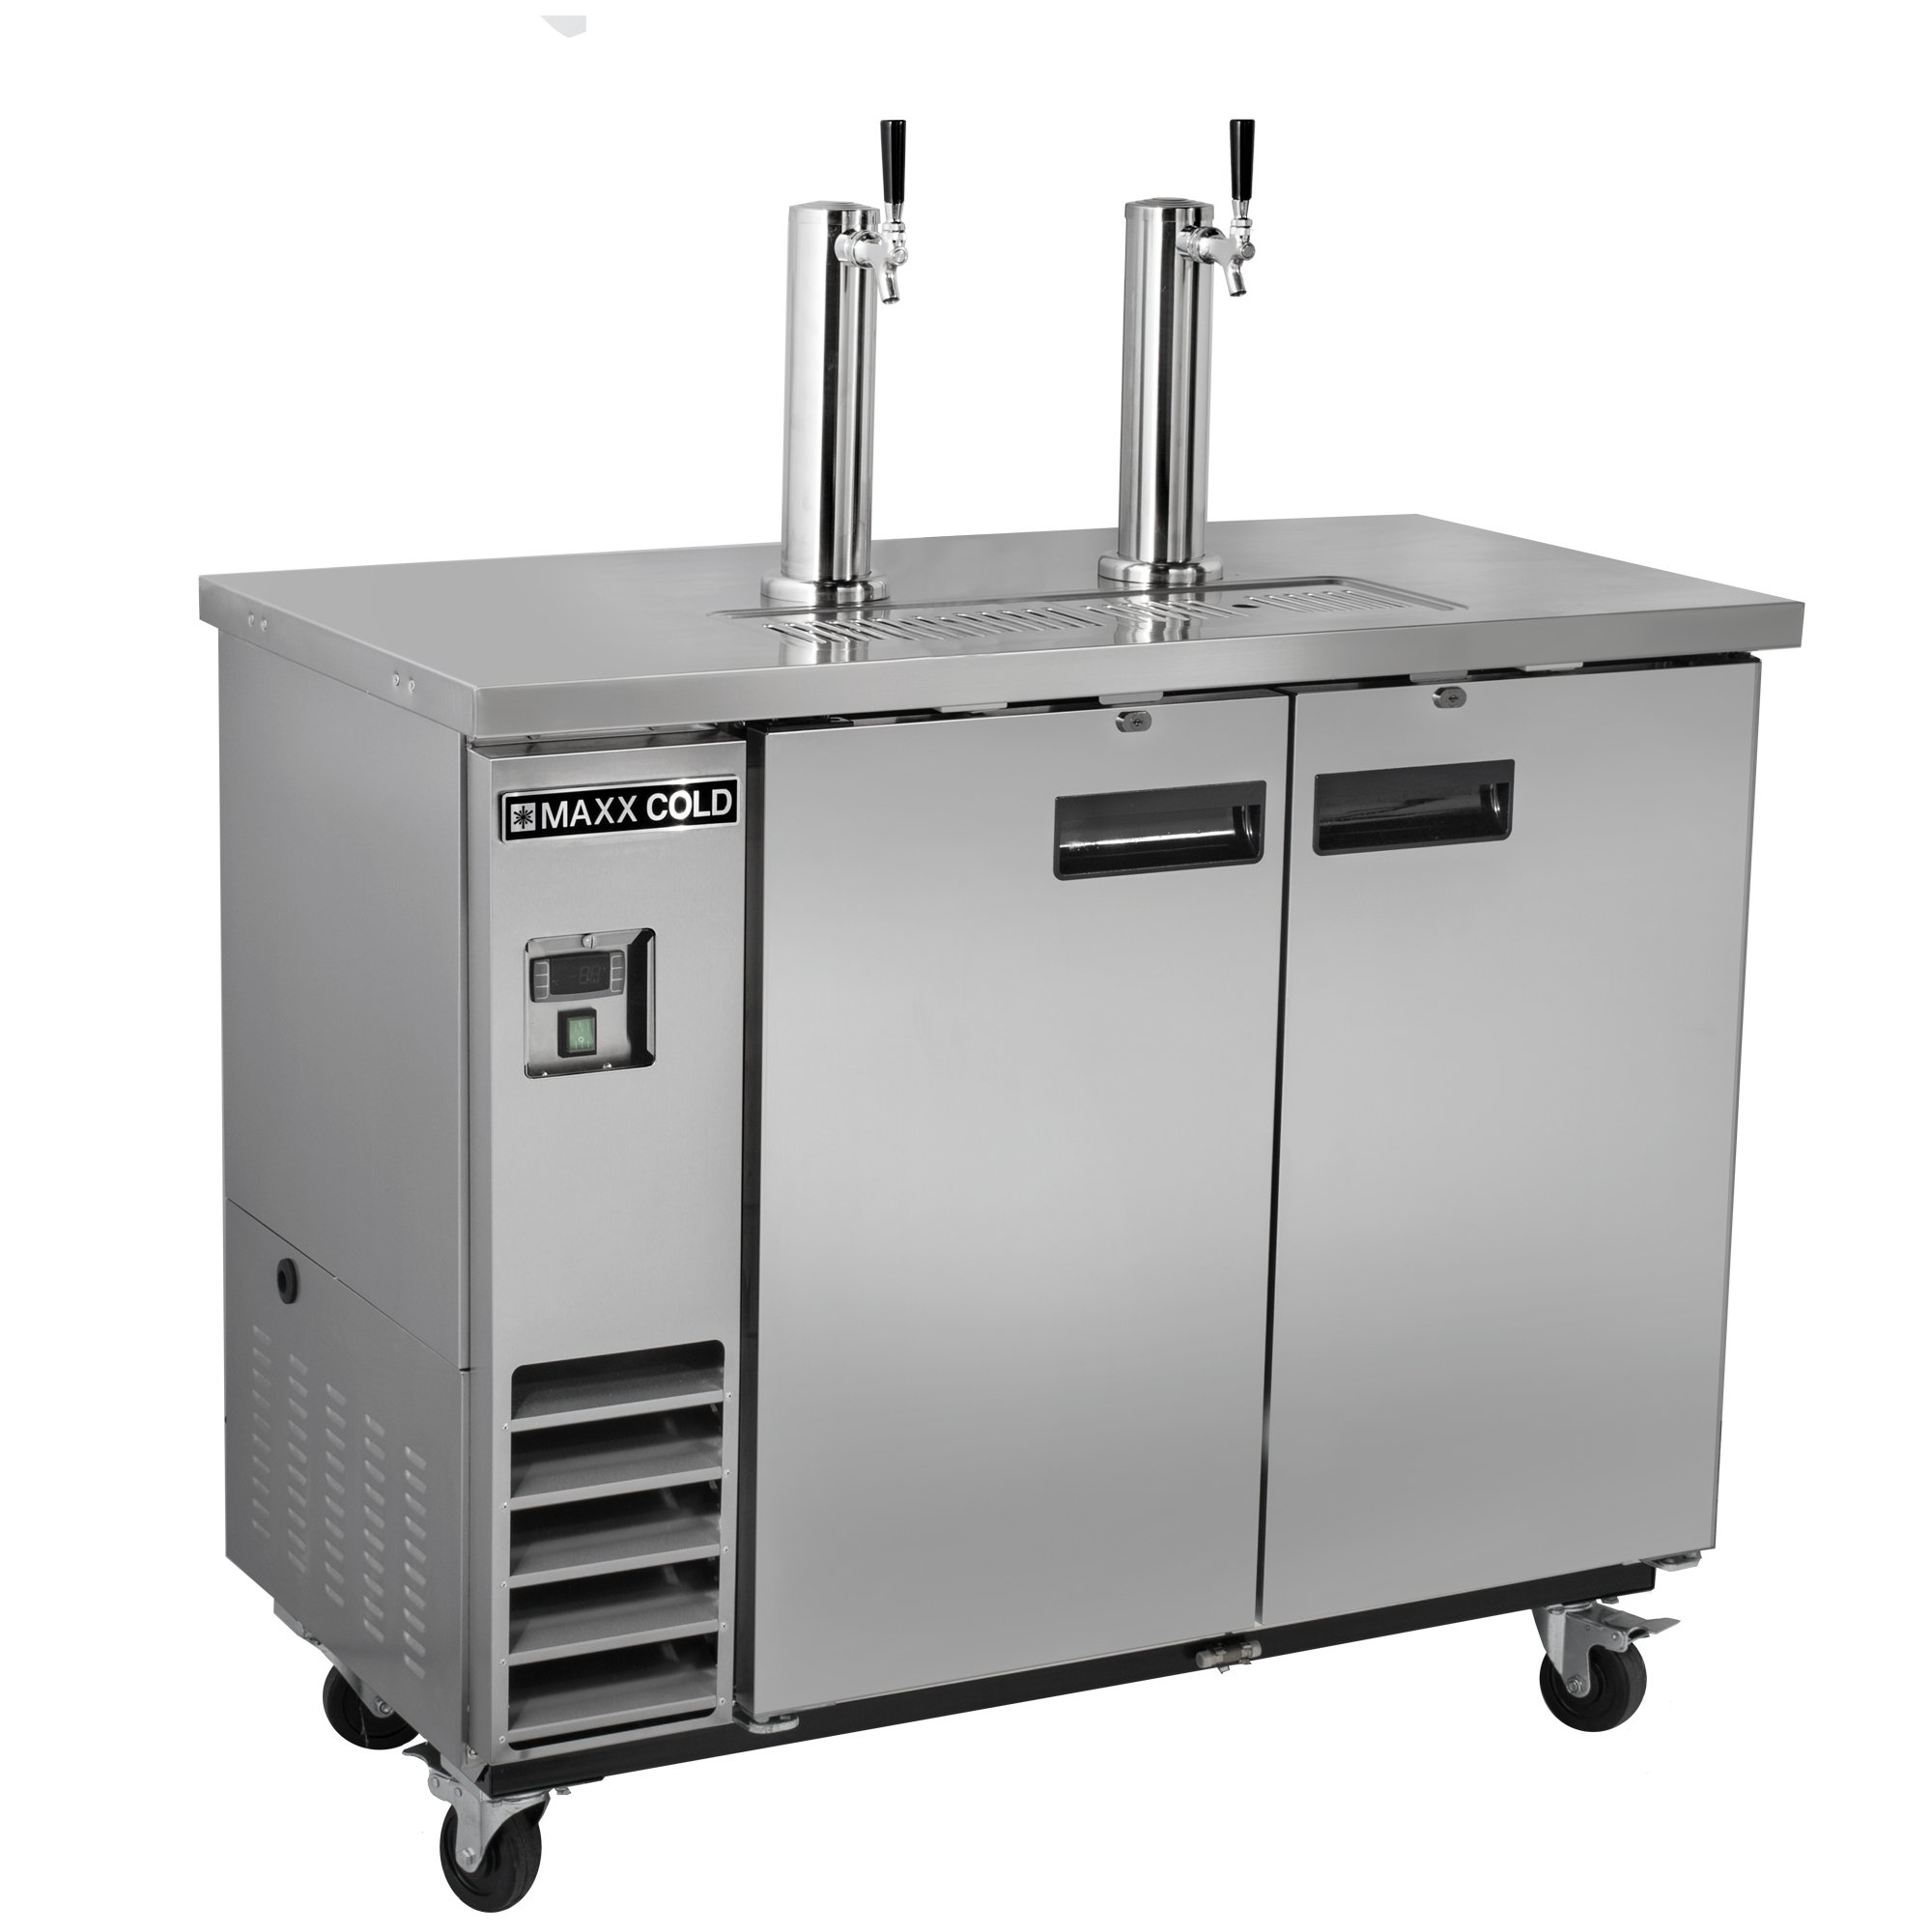 Maxx Cold MXBD48-2S Commercial Stainless Steel NSF Bar Direct Draw Kegerator Beer Dispenser Cooler with 2 Towers Taps Holds 2 Half 1/2 Size Kegs, 47.5 Inch Wide 10.5 Cubic Feet , Silver